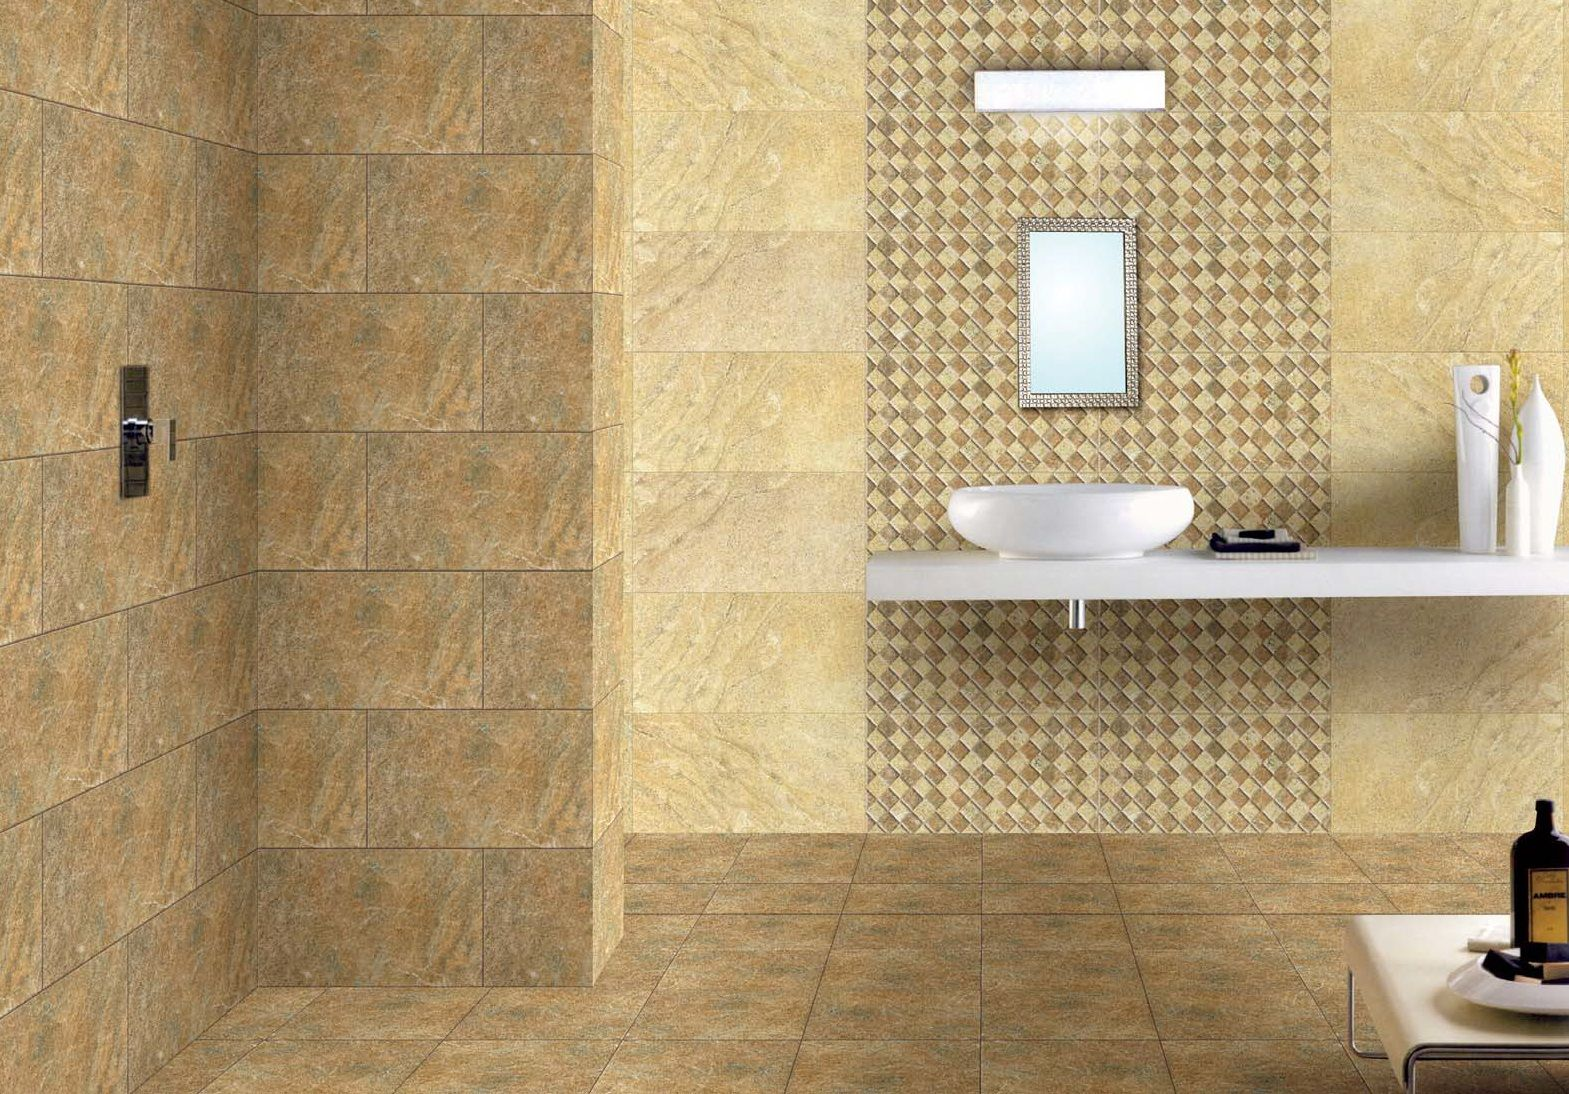 Latest Posts Under: Bathroom tile ideas | ideas | Pinterest ...